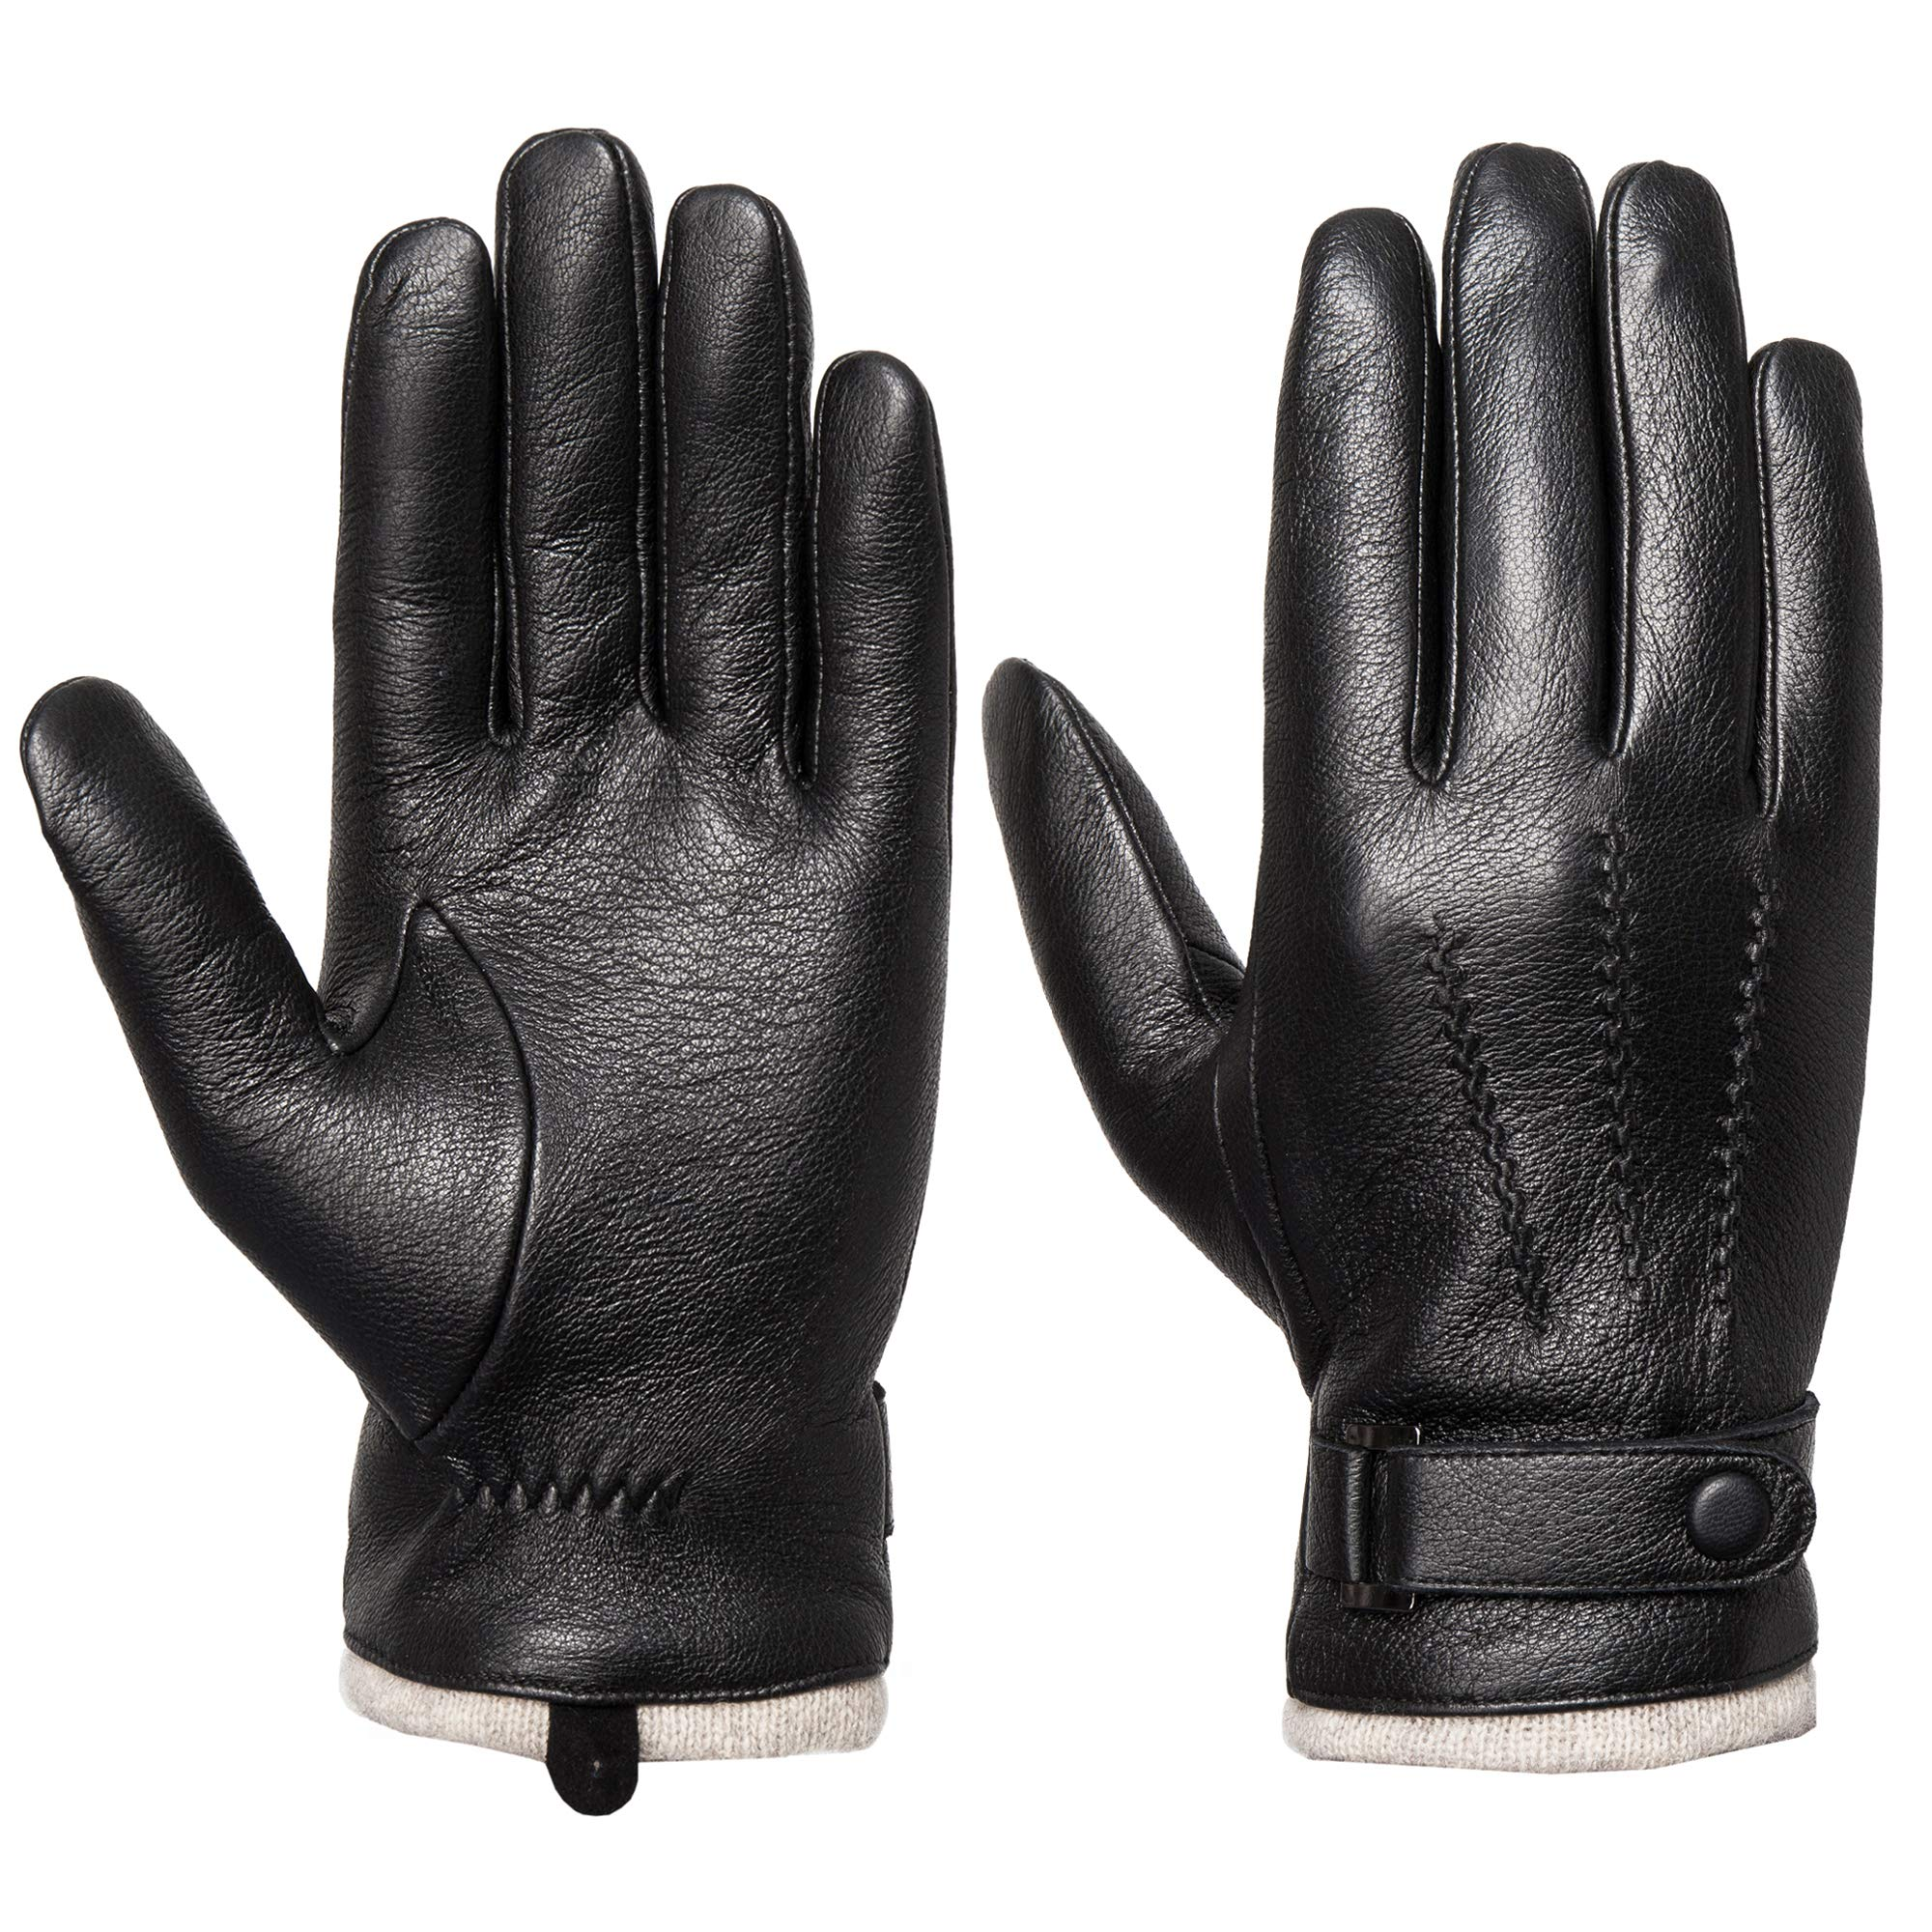 Men's Genuine Leather Gloves Winter - Acdyion Touchscreen Texting 100% Cashmere Lined Warm Dress Driving Gloves (Black, Medium)